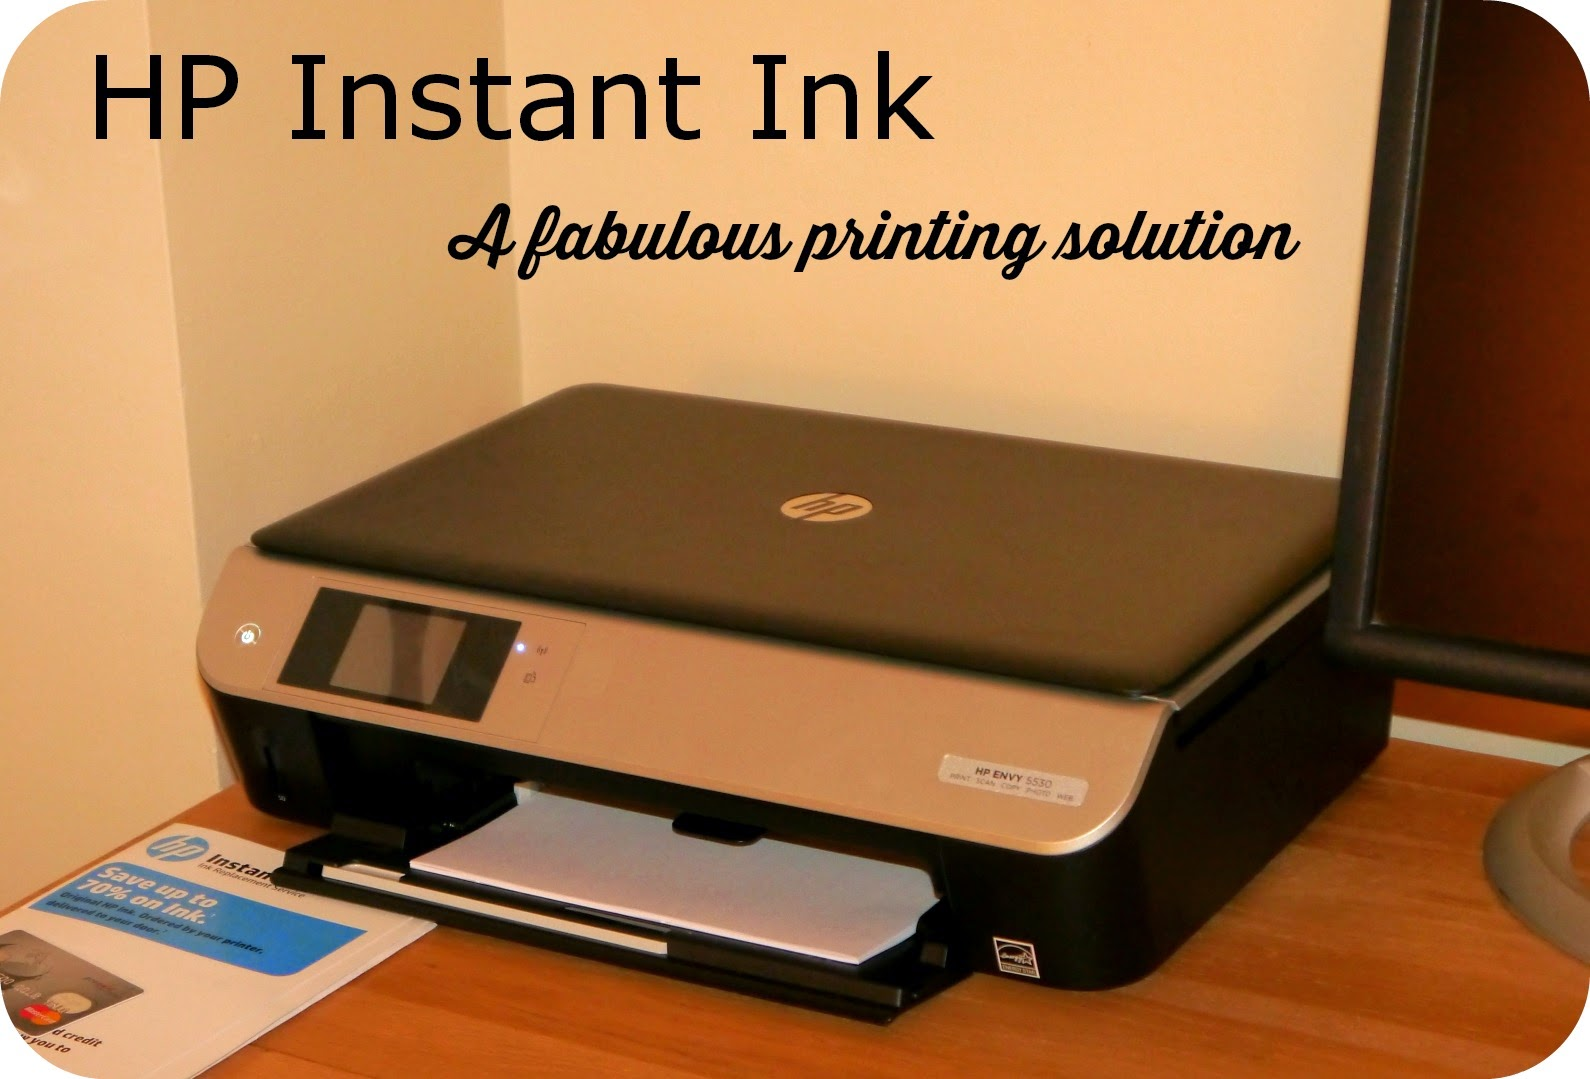 Mummy From The Heart: No fuss printing with HP Instant Ink